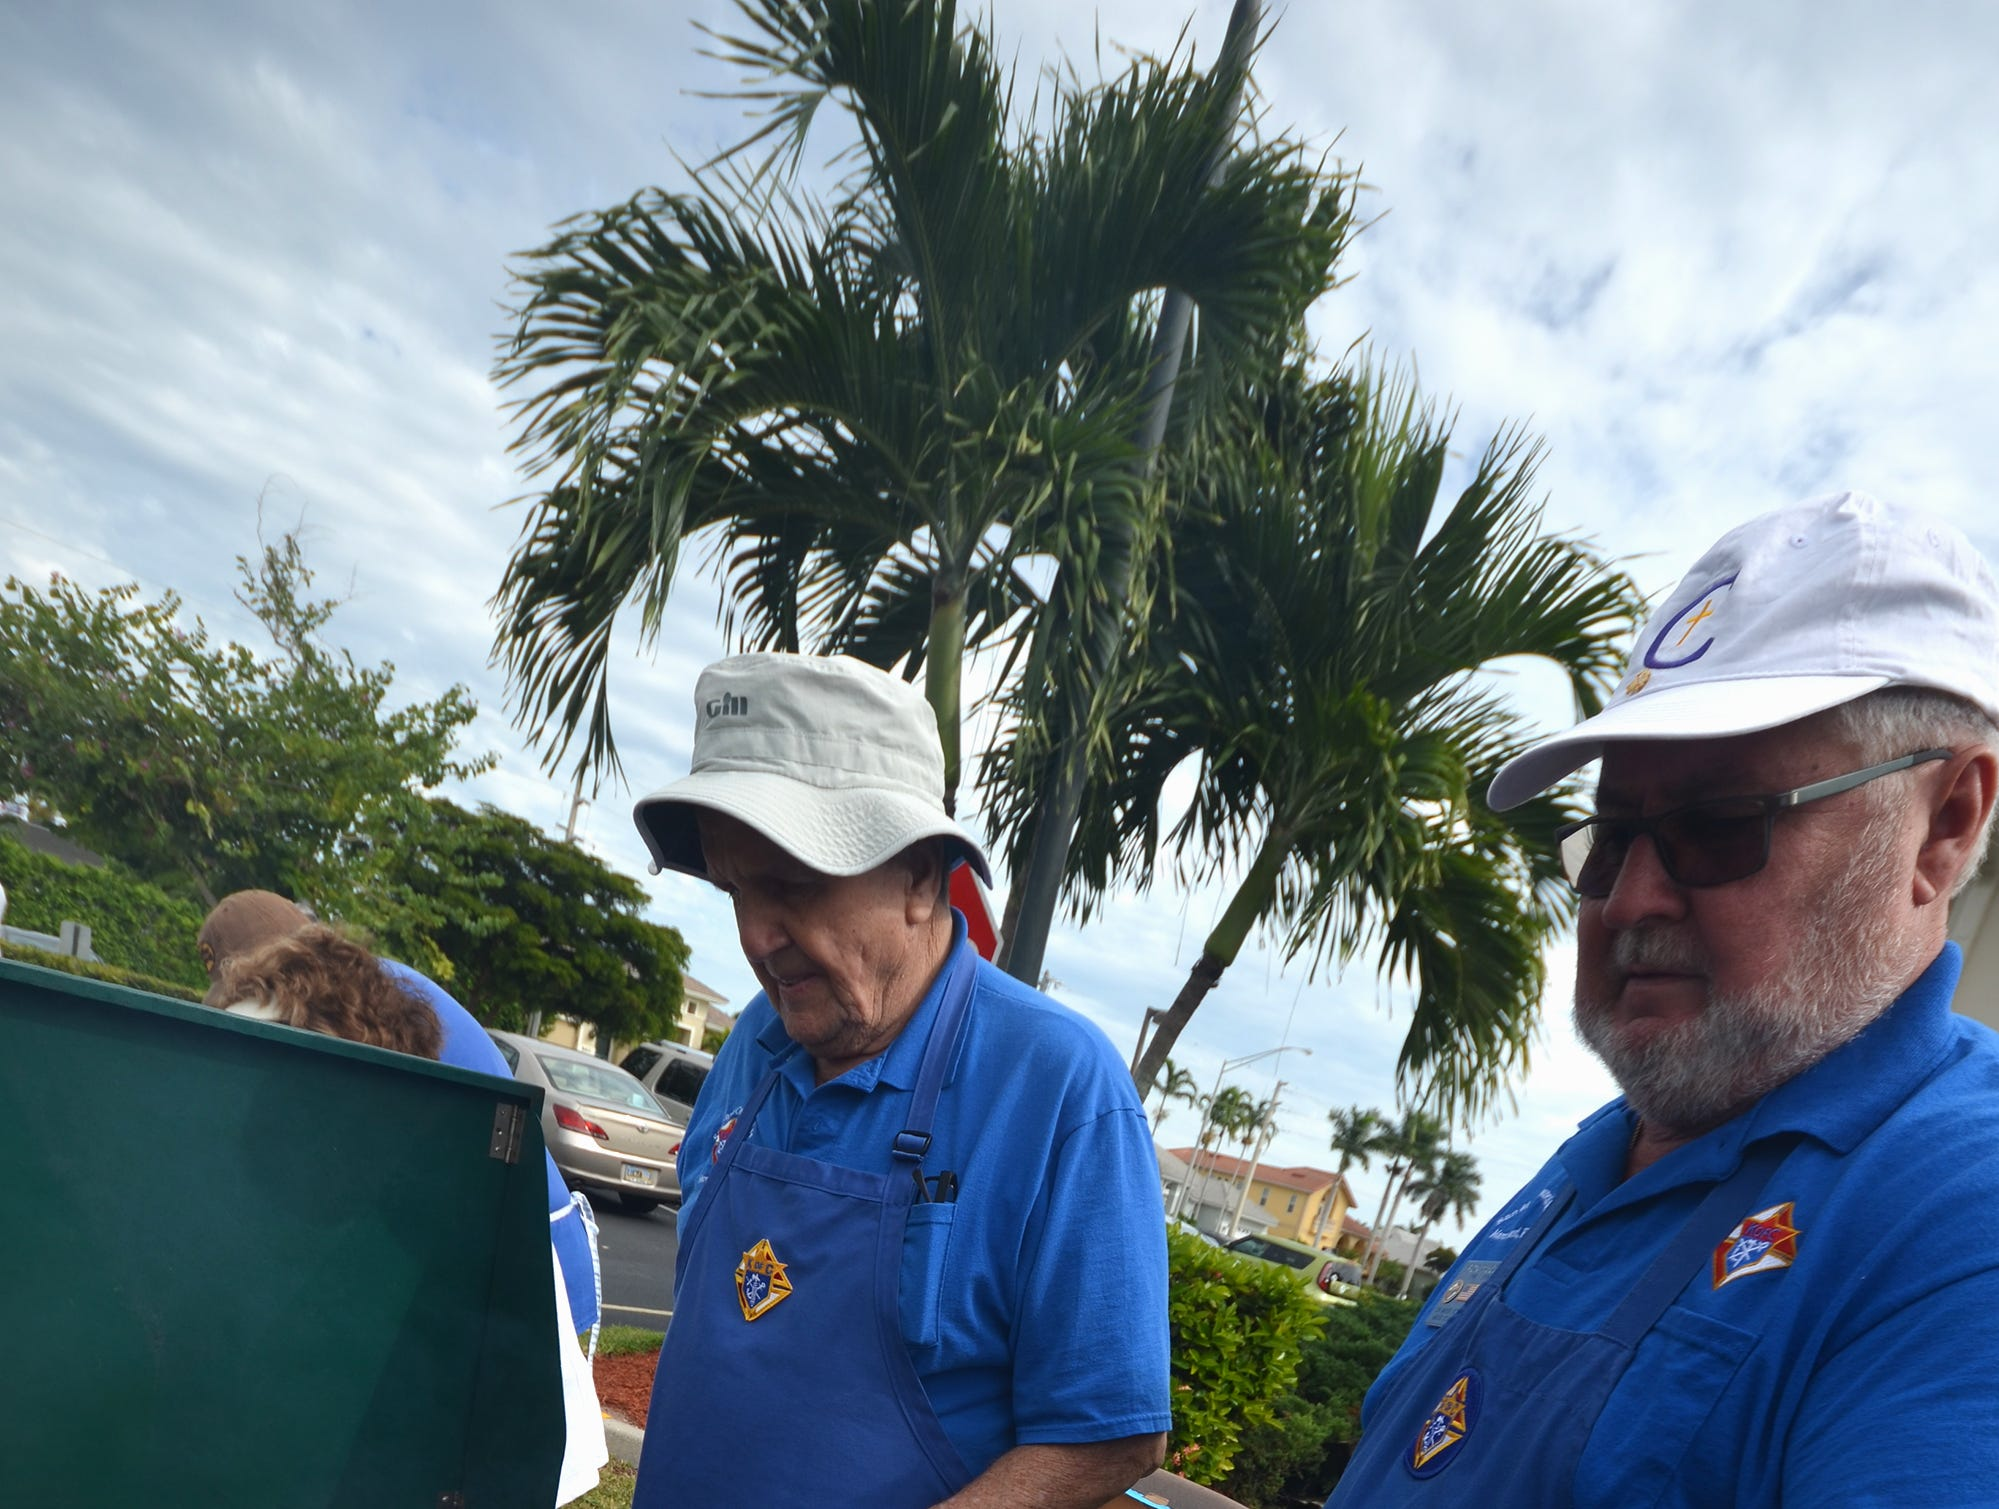 Volunteer chefs Dick Poulanger, left, and Ron McClay man the grill. The Marco Island Knights of Columbus held their inaugural car show Saturday in the parking lot at San Marco Catholic Church.